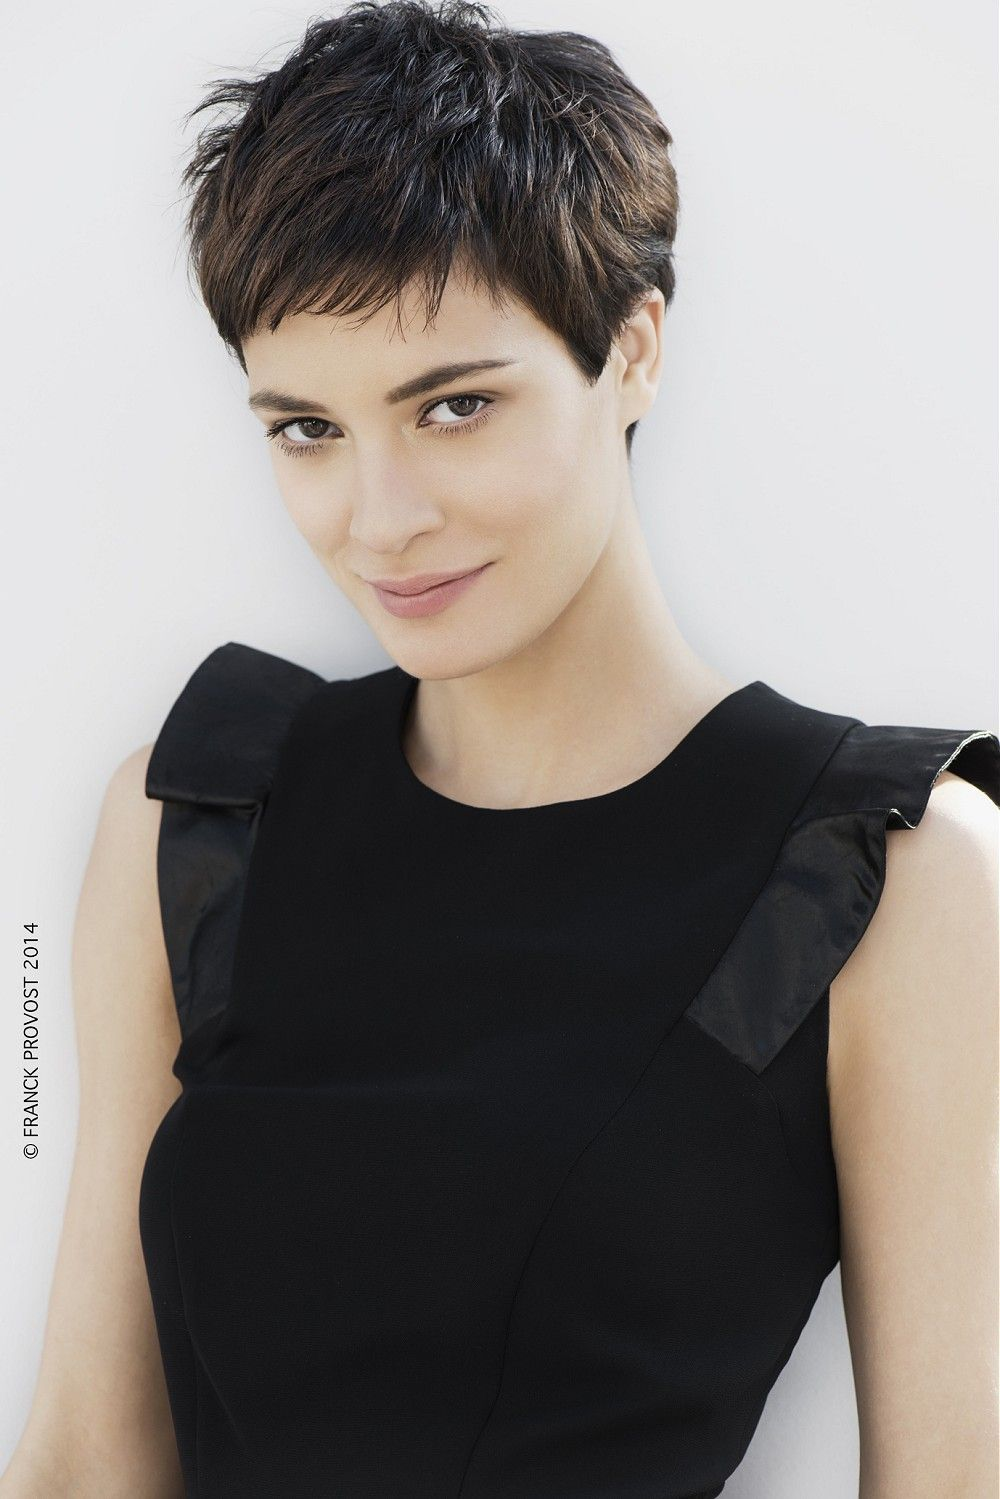 Pin on hairstyle inspiration - Franck provost coupe femme ...